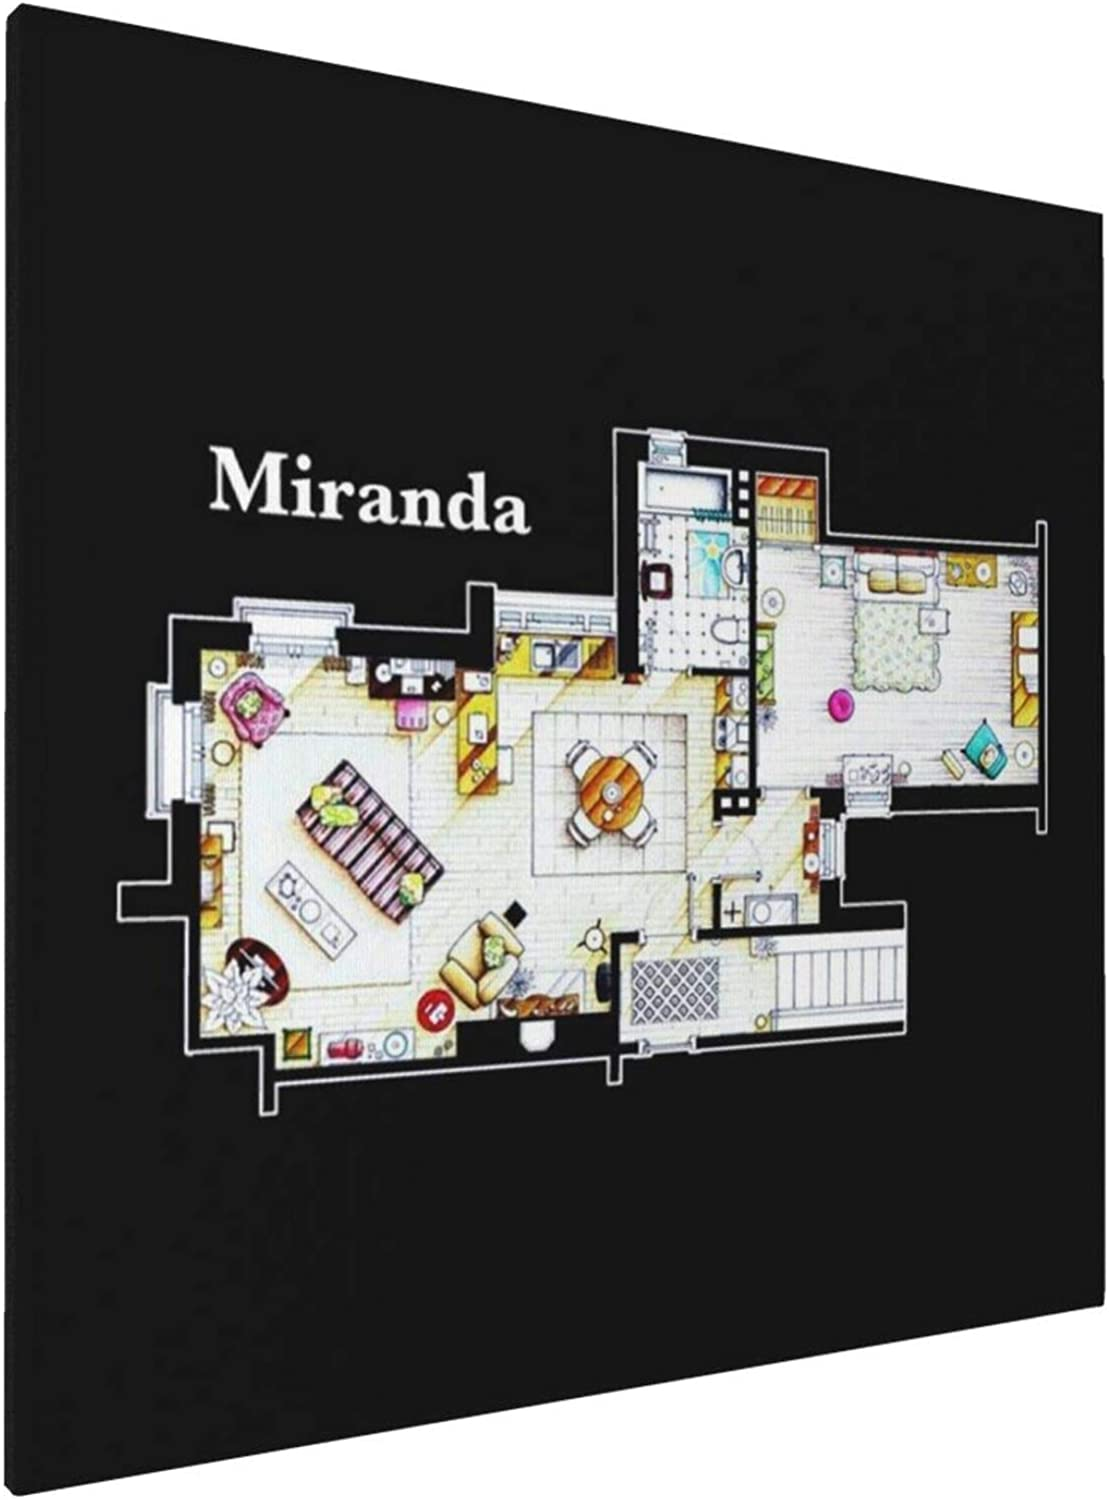 1007 Canvas Prints Wall Art Paintings(20x20in) Mirandas Apartment Floor Plan Pictures Home Office Decor Framed Posters & Prints